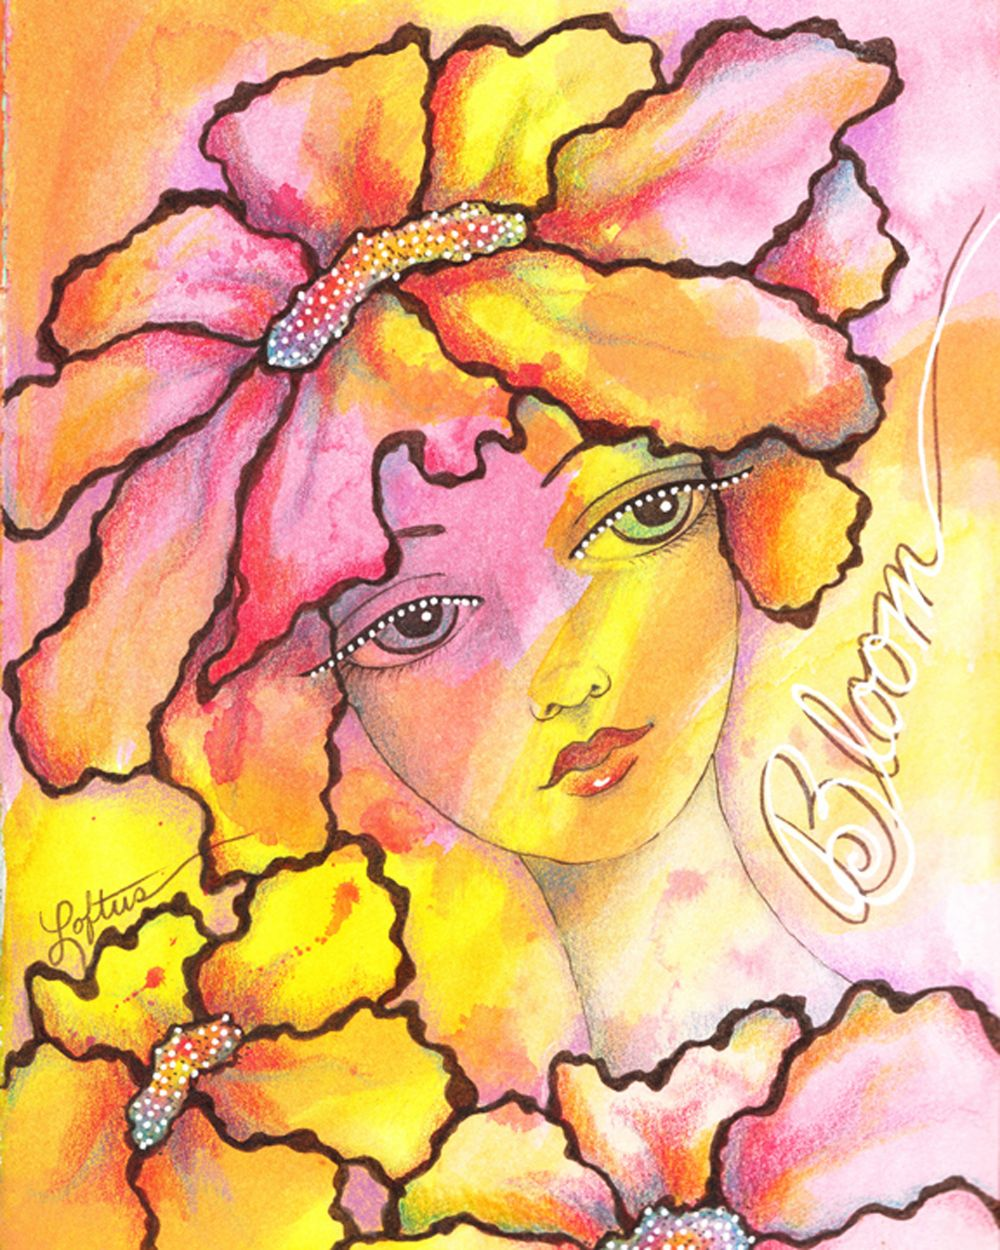 whimsical girl flower mixed media painting illustration by artist joann loftus